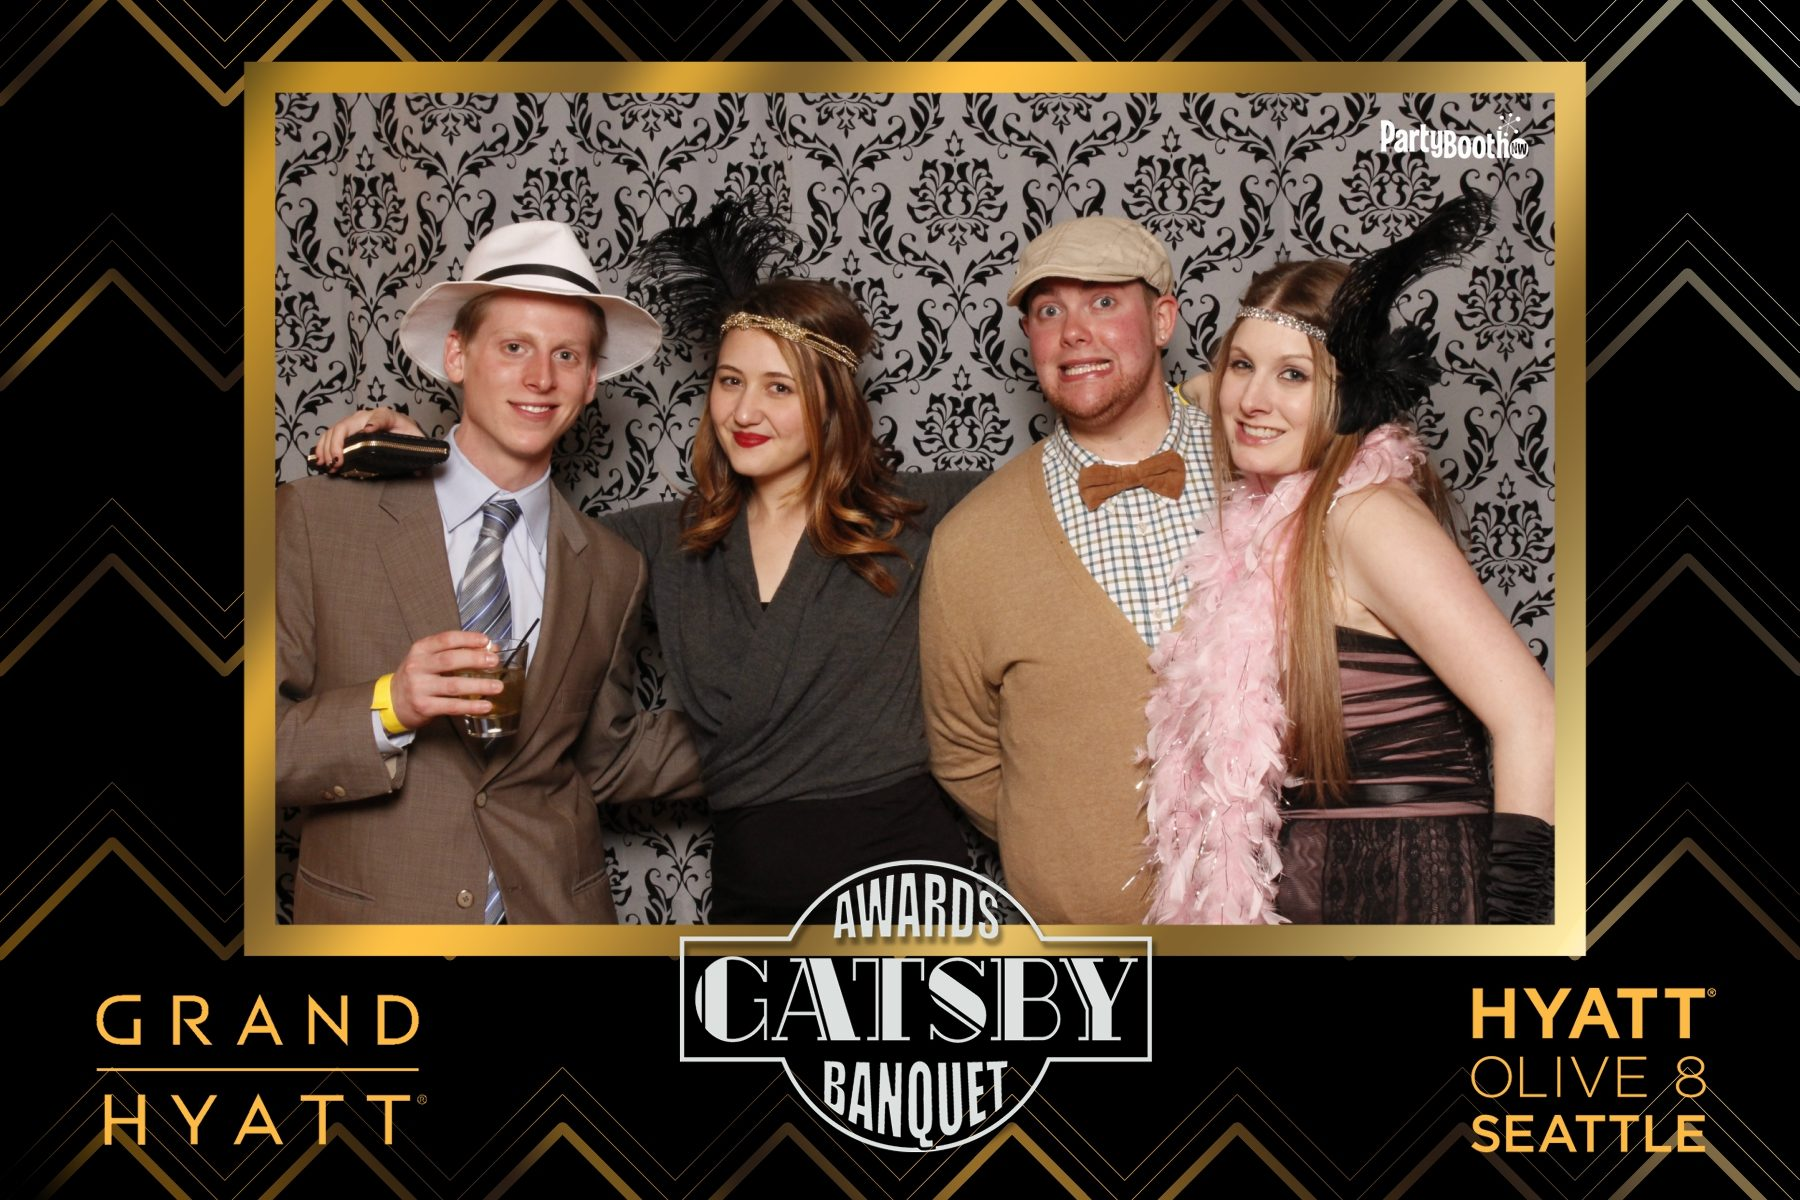 It's the Hyatt Seattle Annual Awards Banquet - Tonight We PartyBooth! Seattle Photo Booth ©2014 PartyBoothNW.com